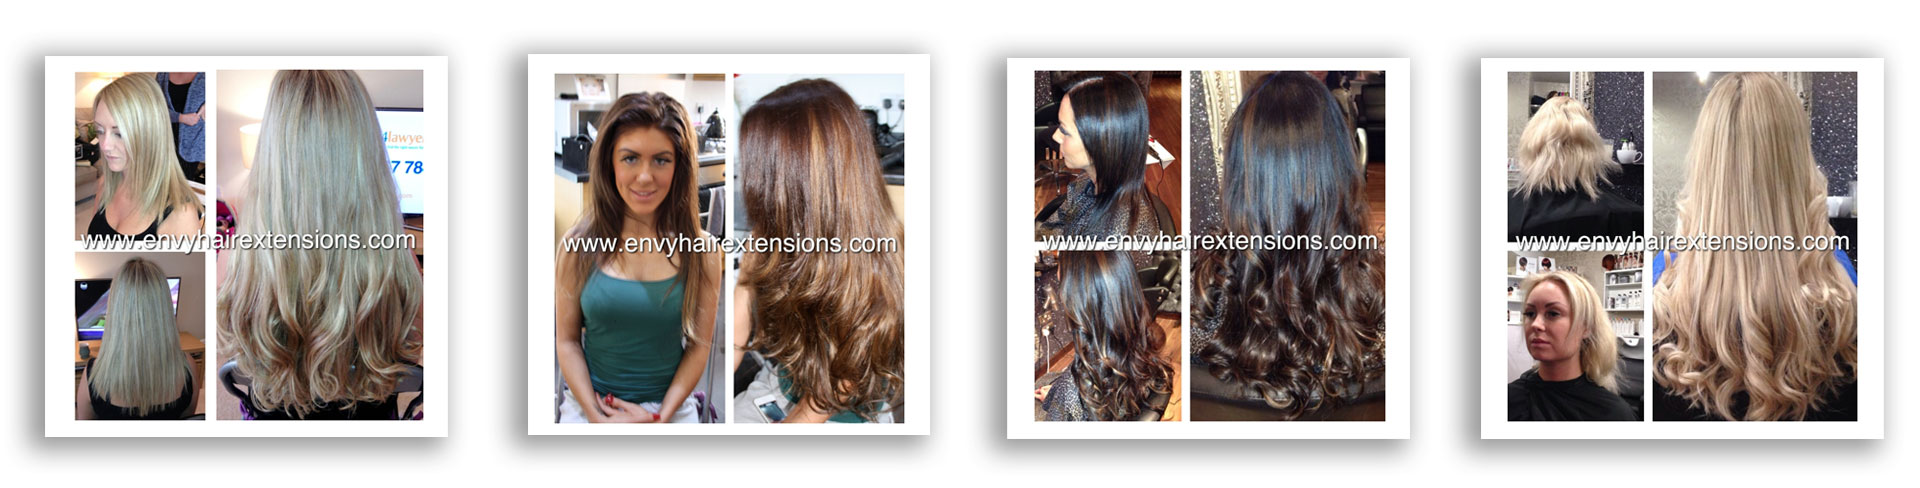 About Envy Hair Extensions Envy Hair Extensions